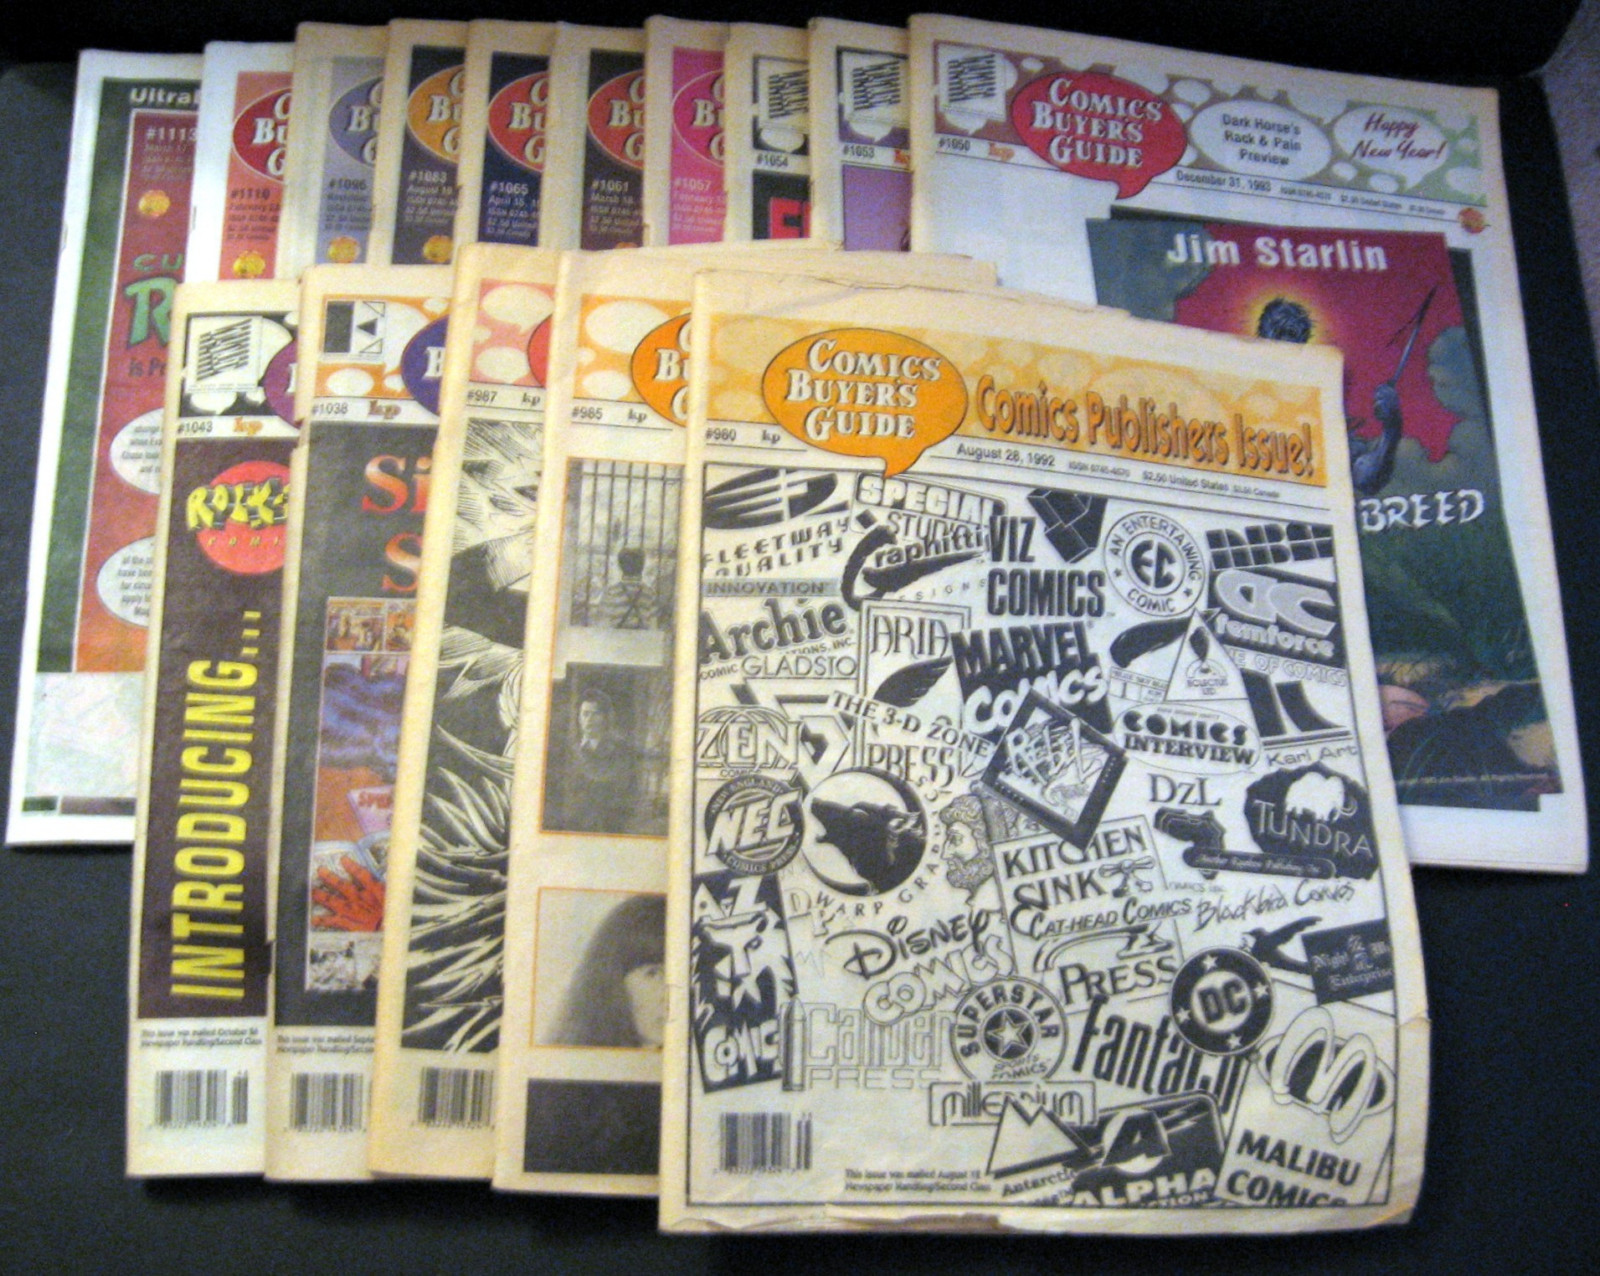 Comic Buyers' Guide Tabloid Newspaper Lot Krause Publications